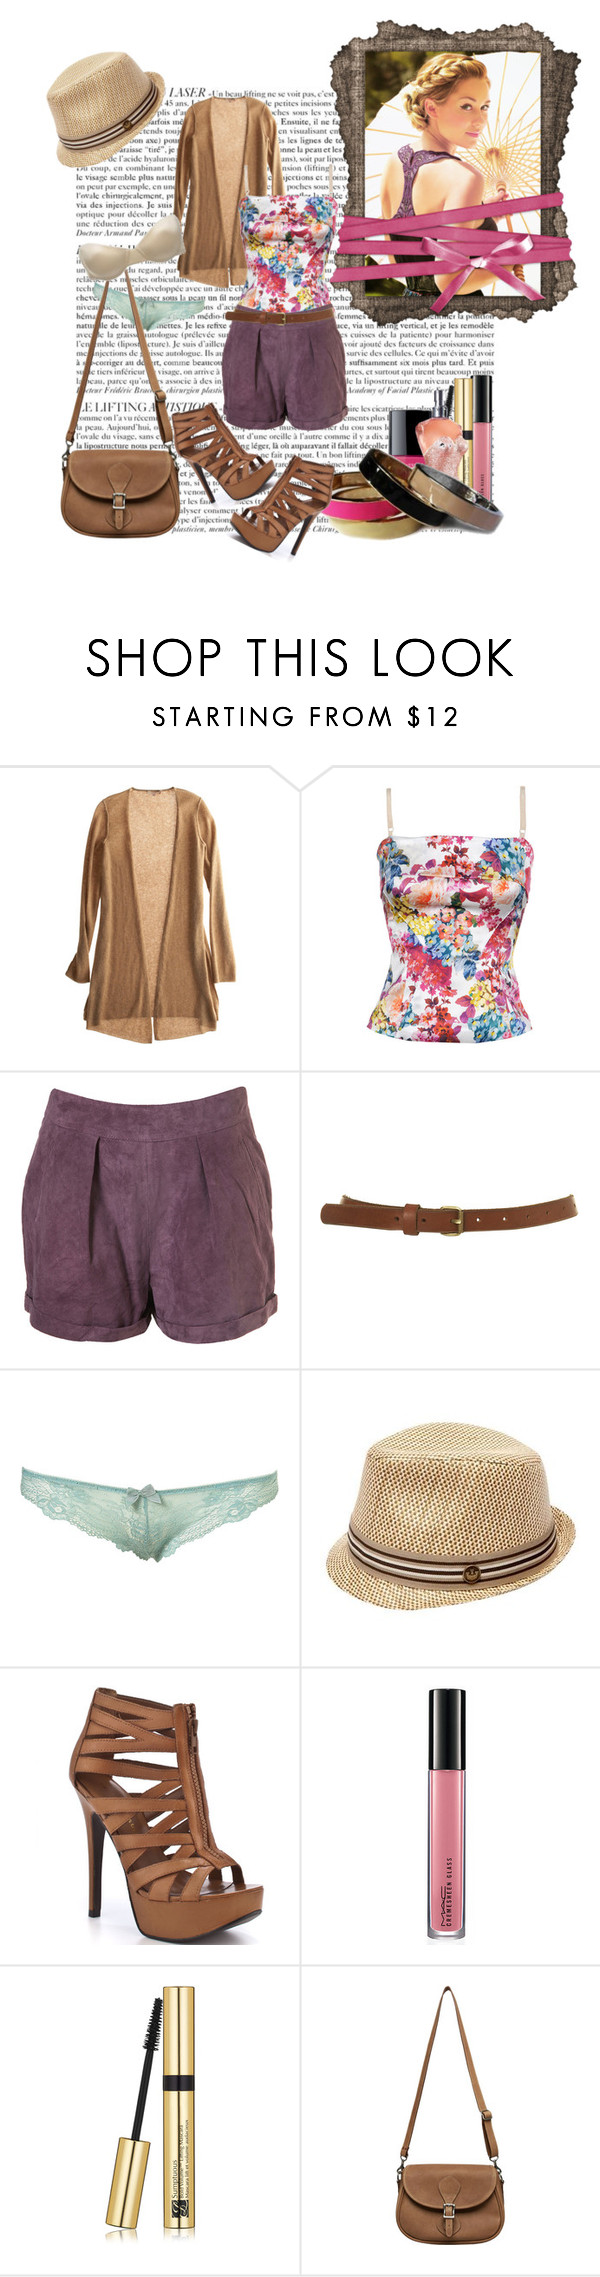 """""""can't make this over."""" by itsfaith ❤ liked on Polyvore featuring Calypso St. Barth, D&G, Topshop, Goorin, Chinese Laundry, MAC Cosmetics, Chanel, Estée Lauder, Jean-Paul Gaultier and J.W. Hulme Co."""